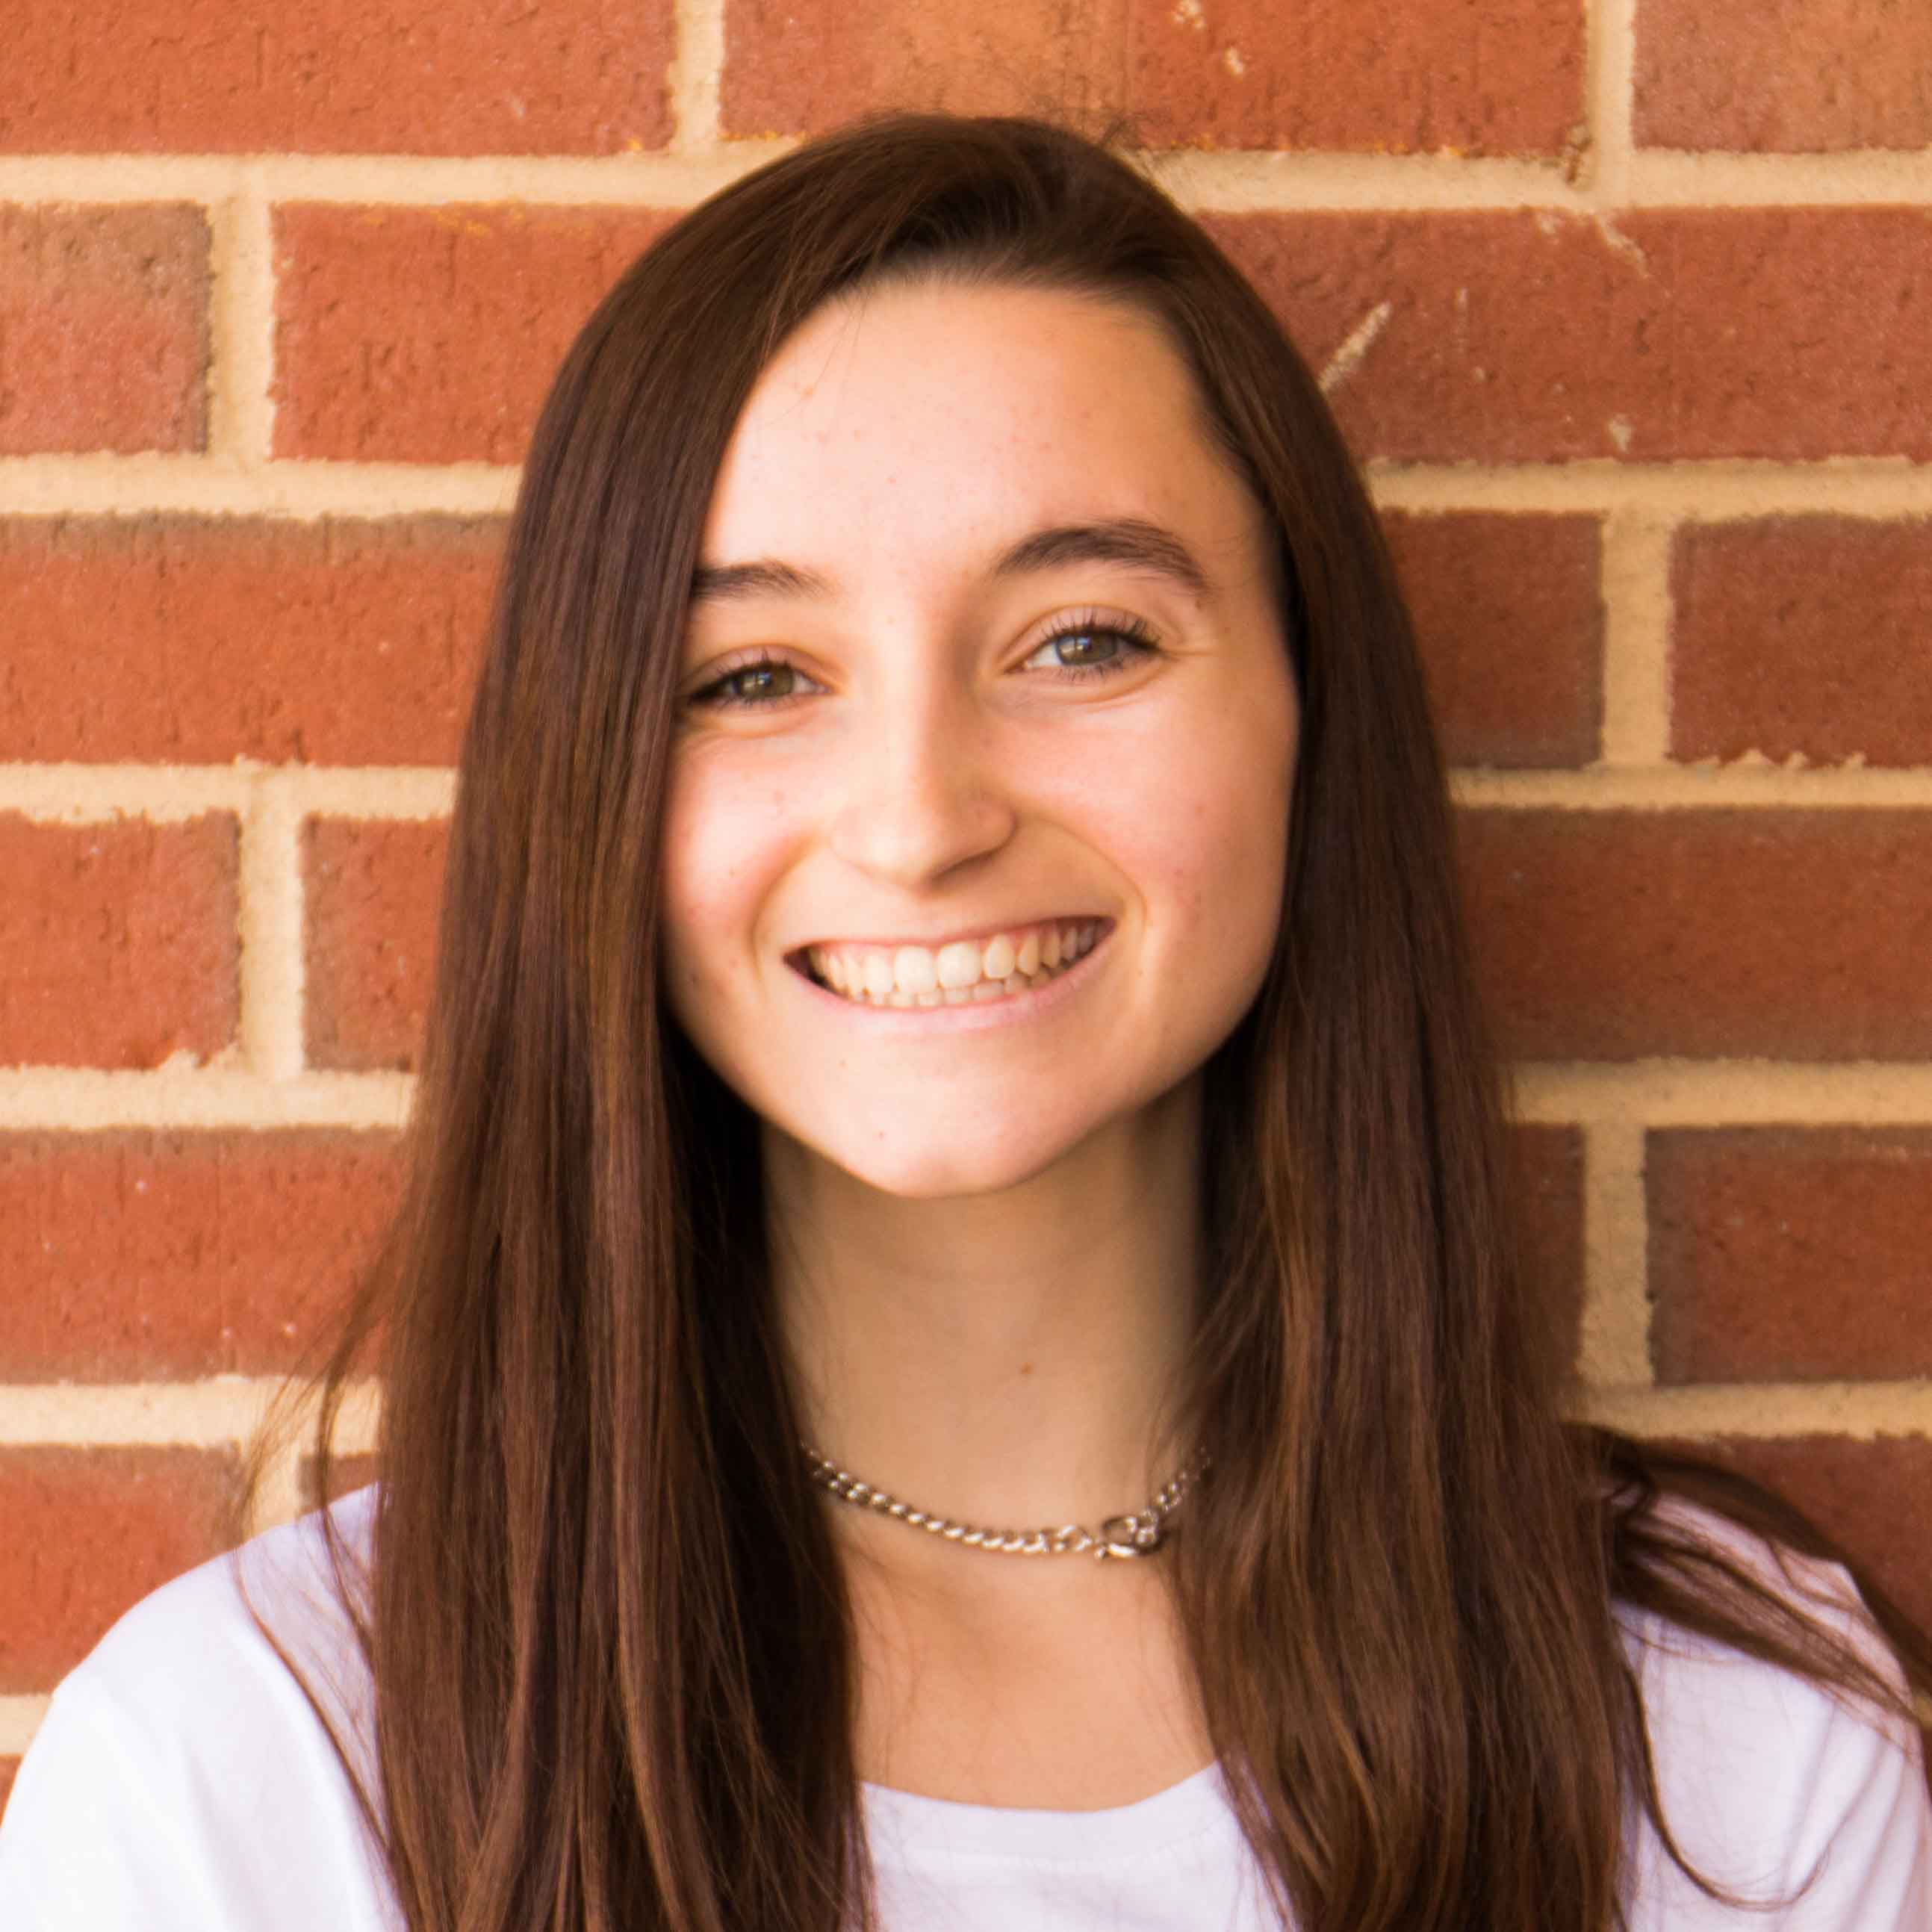 Anna Lulushi, Senior at Thomas Jefferson High School for Science and Technology